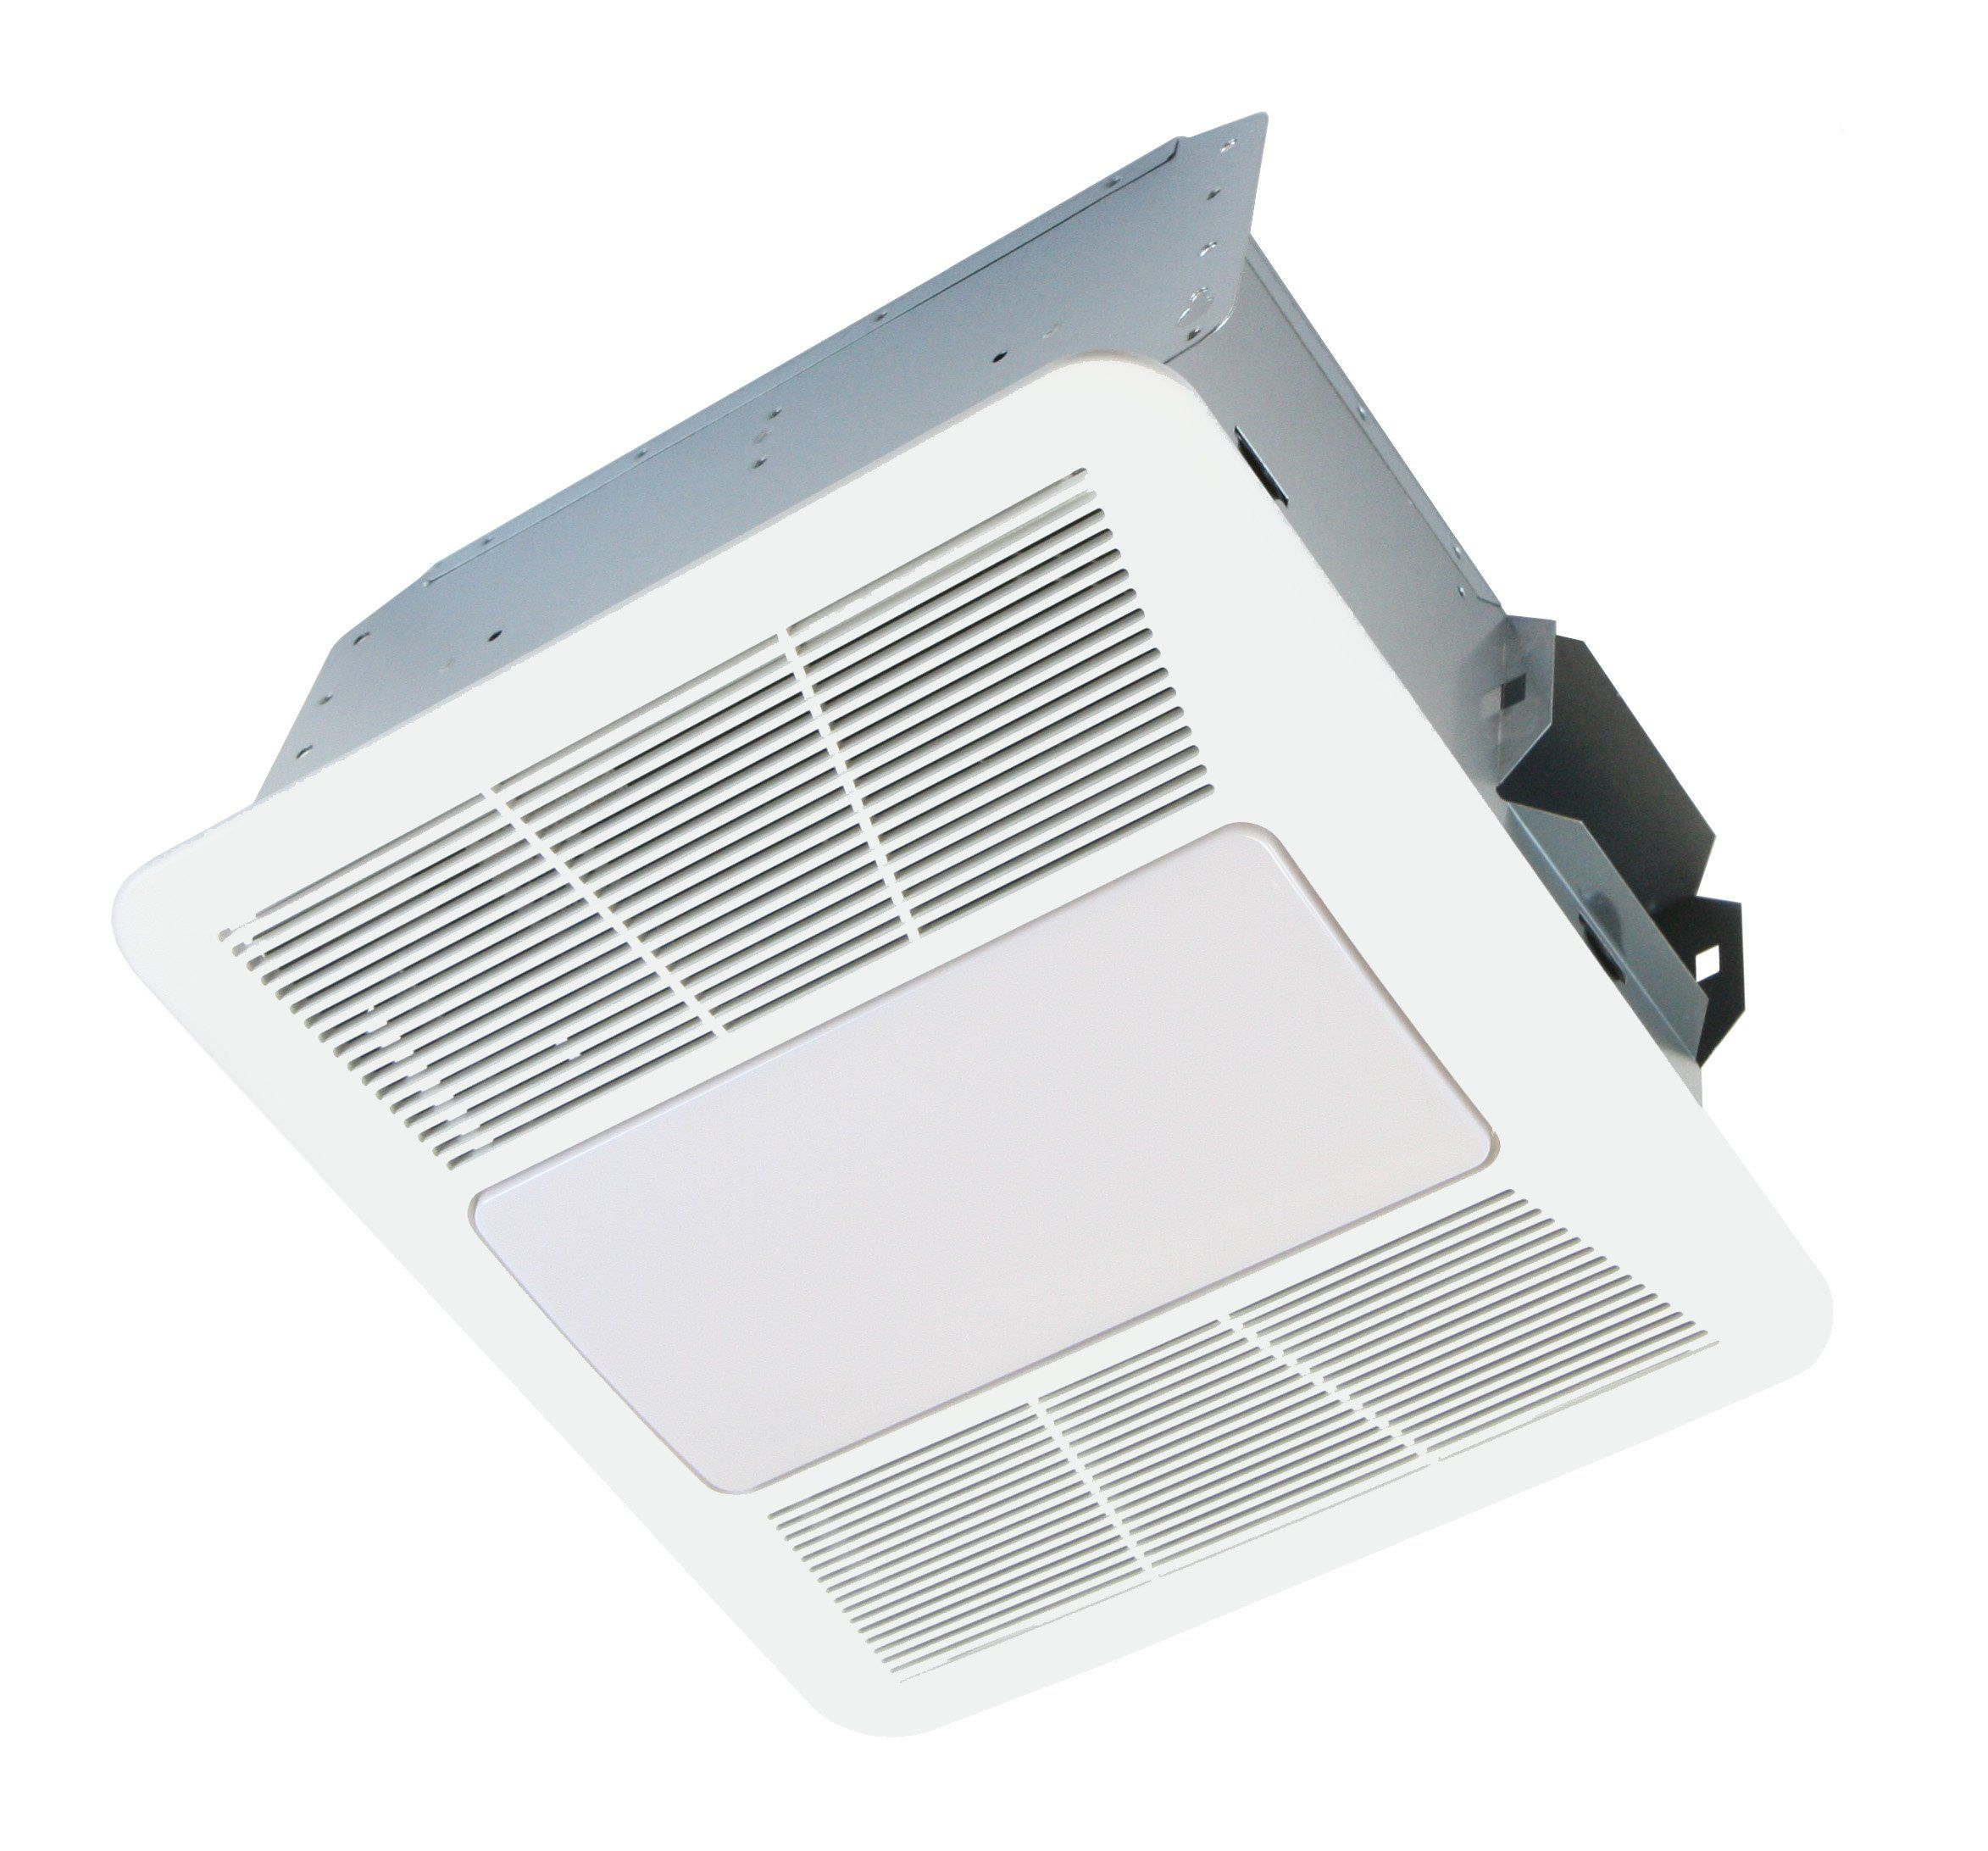 Kaze Appliance Se110l2 Ultra Quiet Bathroom Exhaust Fan With Led Light And Night Light 110 Cfm 0 With Images Bathroom Exhaust Bathroom Ventilation Fan Bathroom Exhaust Fan